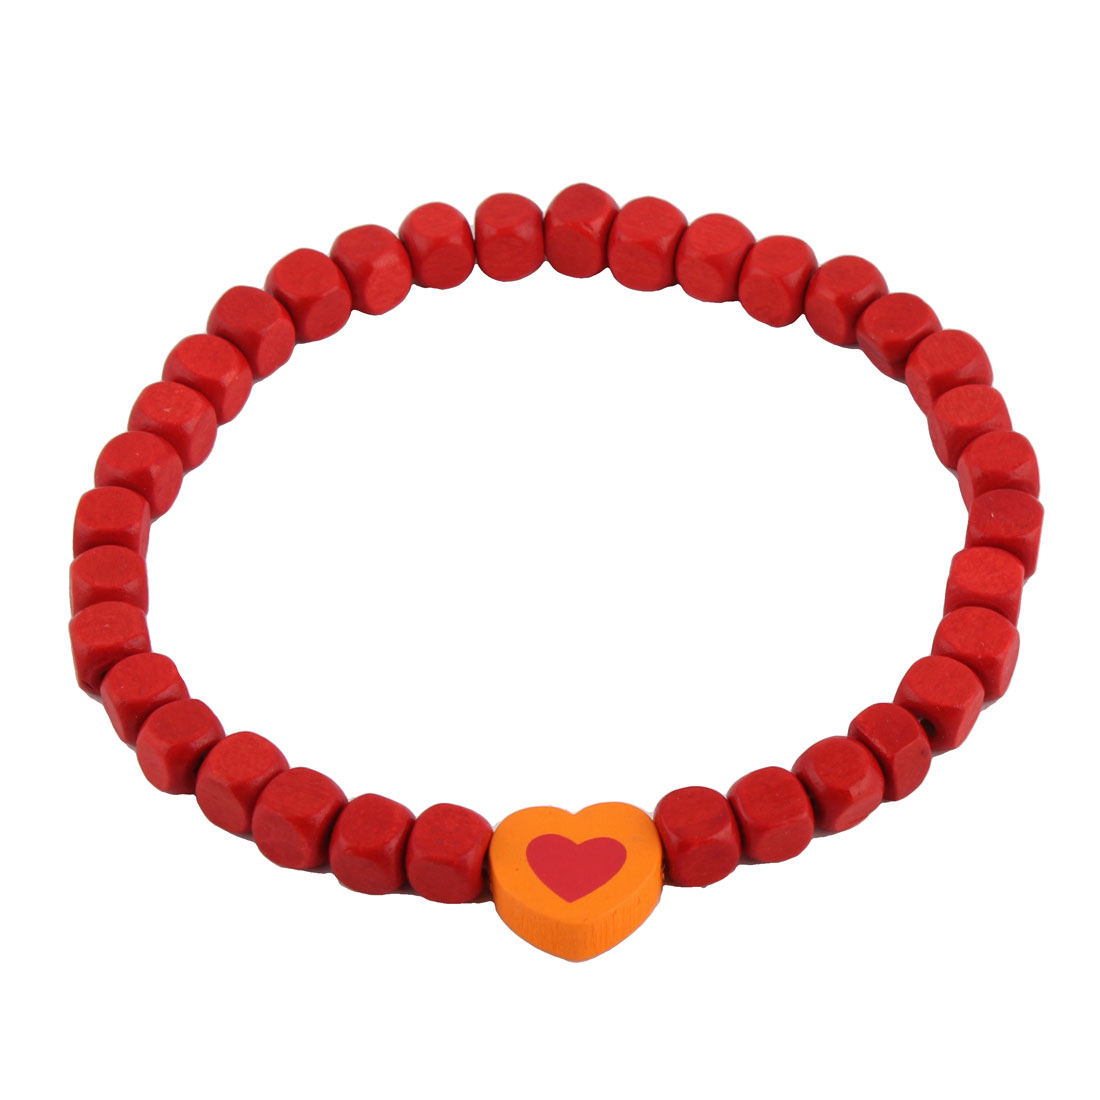 Dog Cat Wood Beads Heart Shaped Pendant Decor Stretchy Collar Necklace